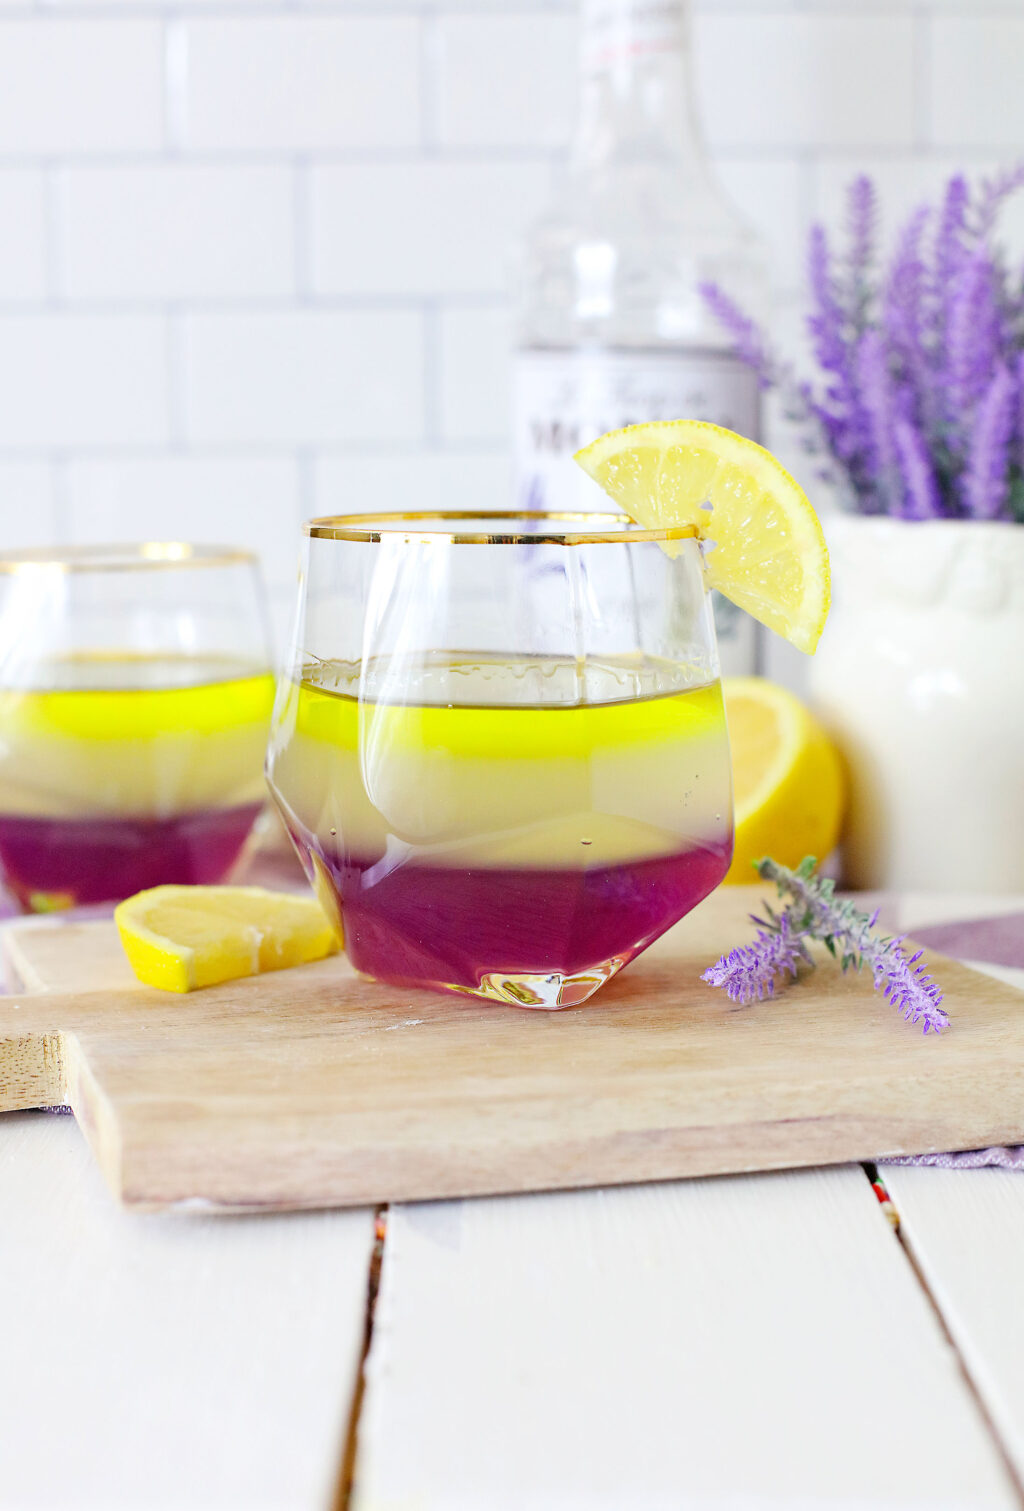 layered lavender lemon cocktail in a glass